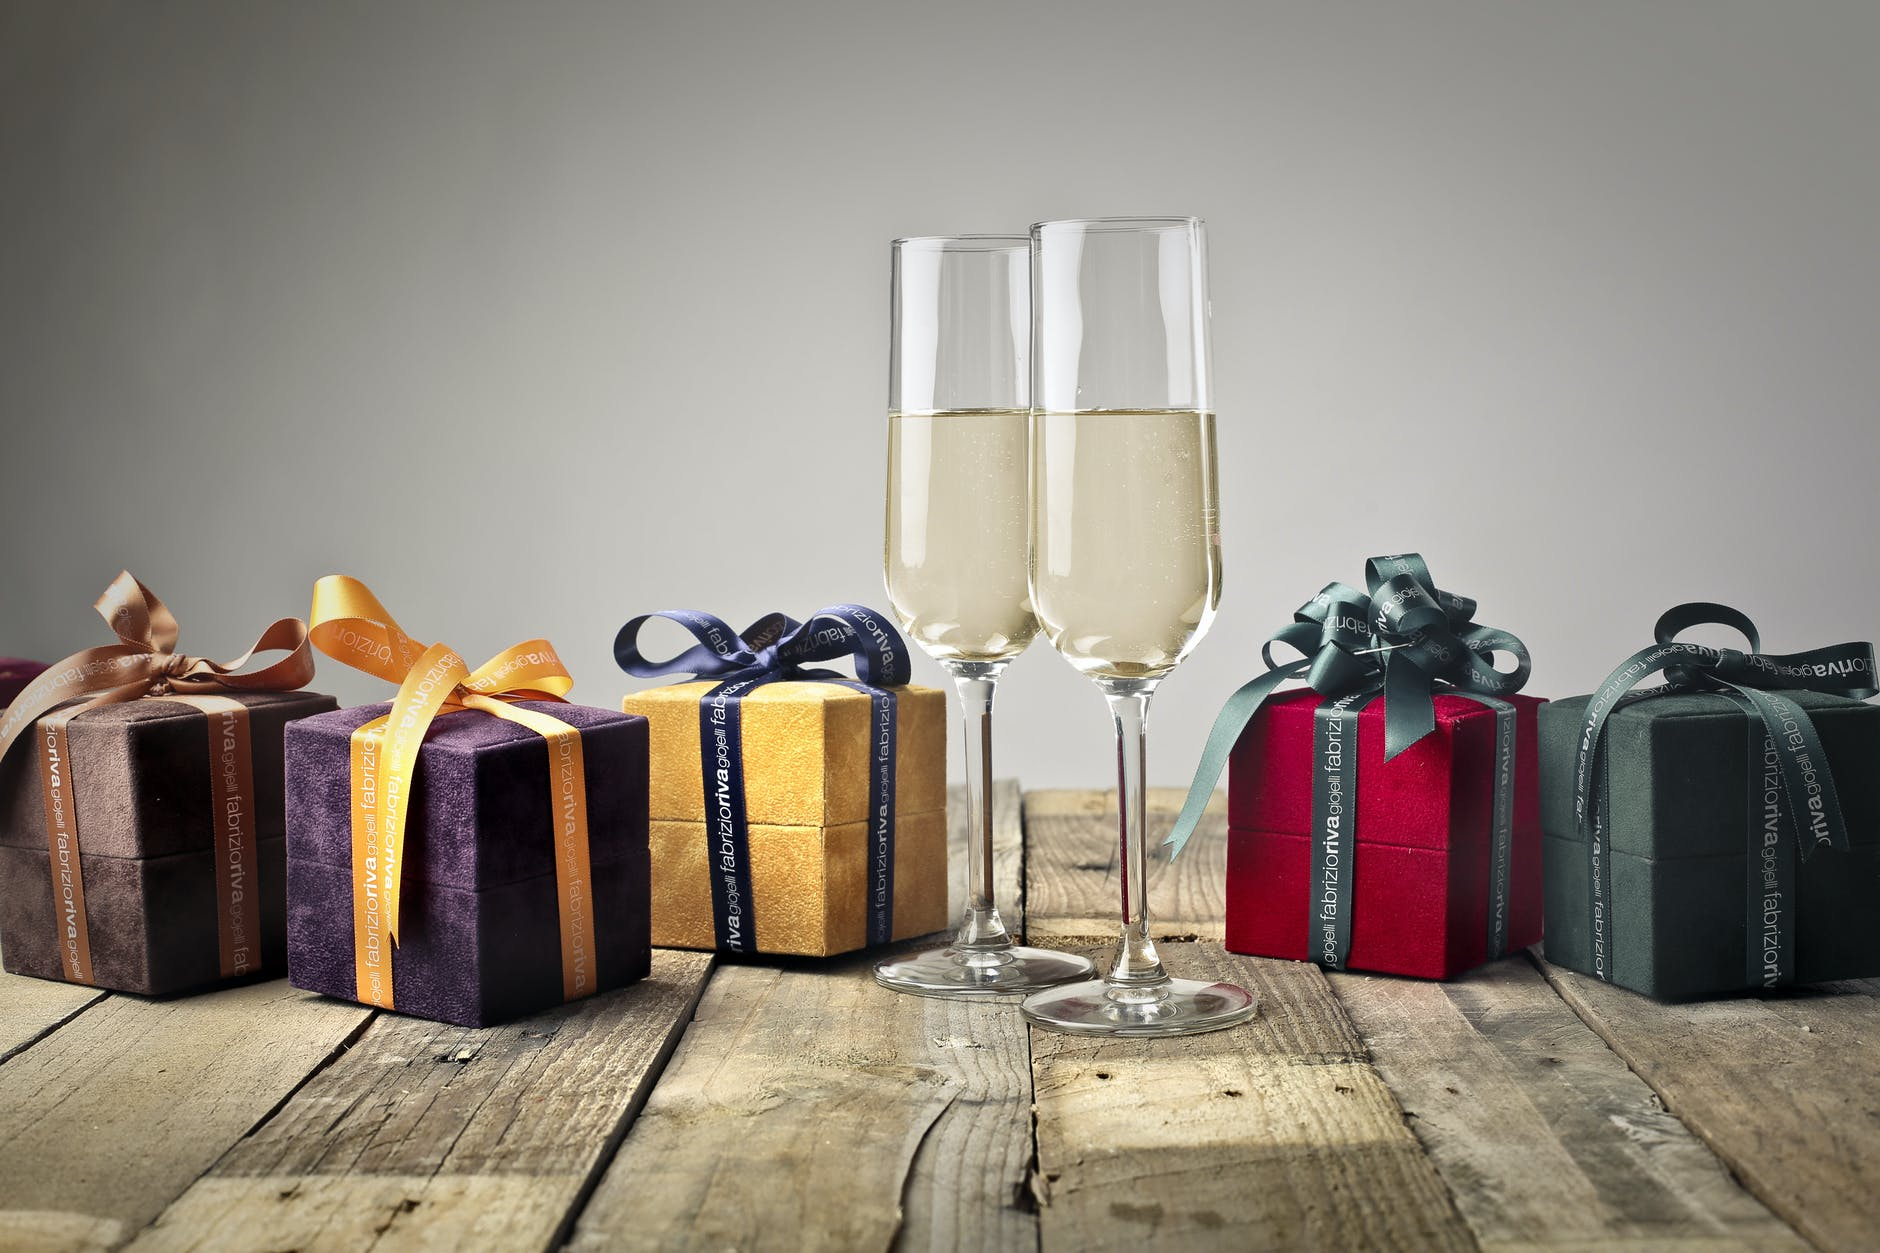 The Best Kitchen Gifts for Christmas